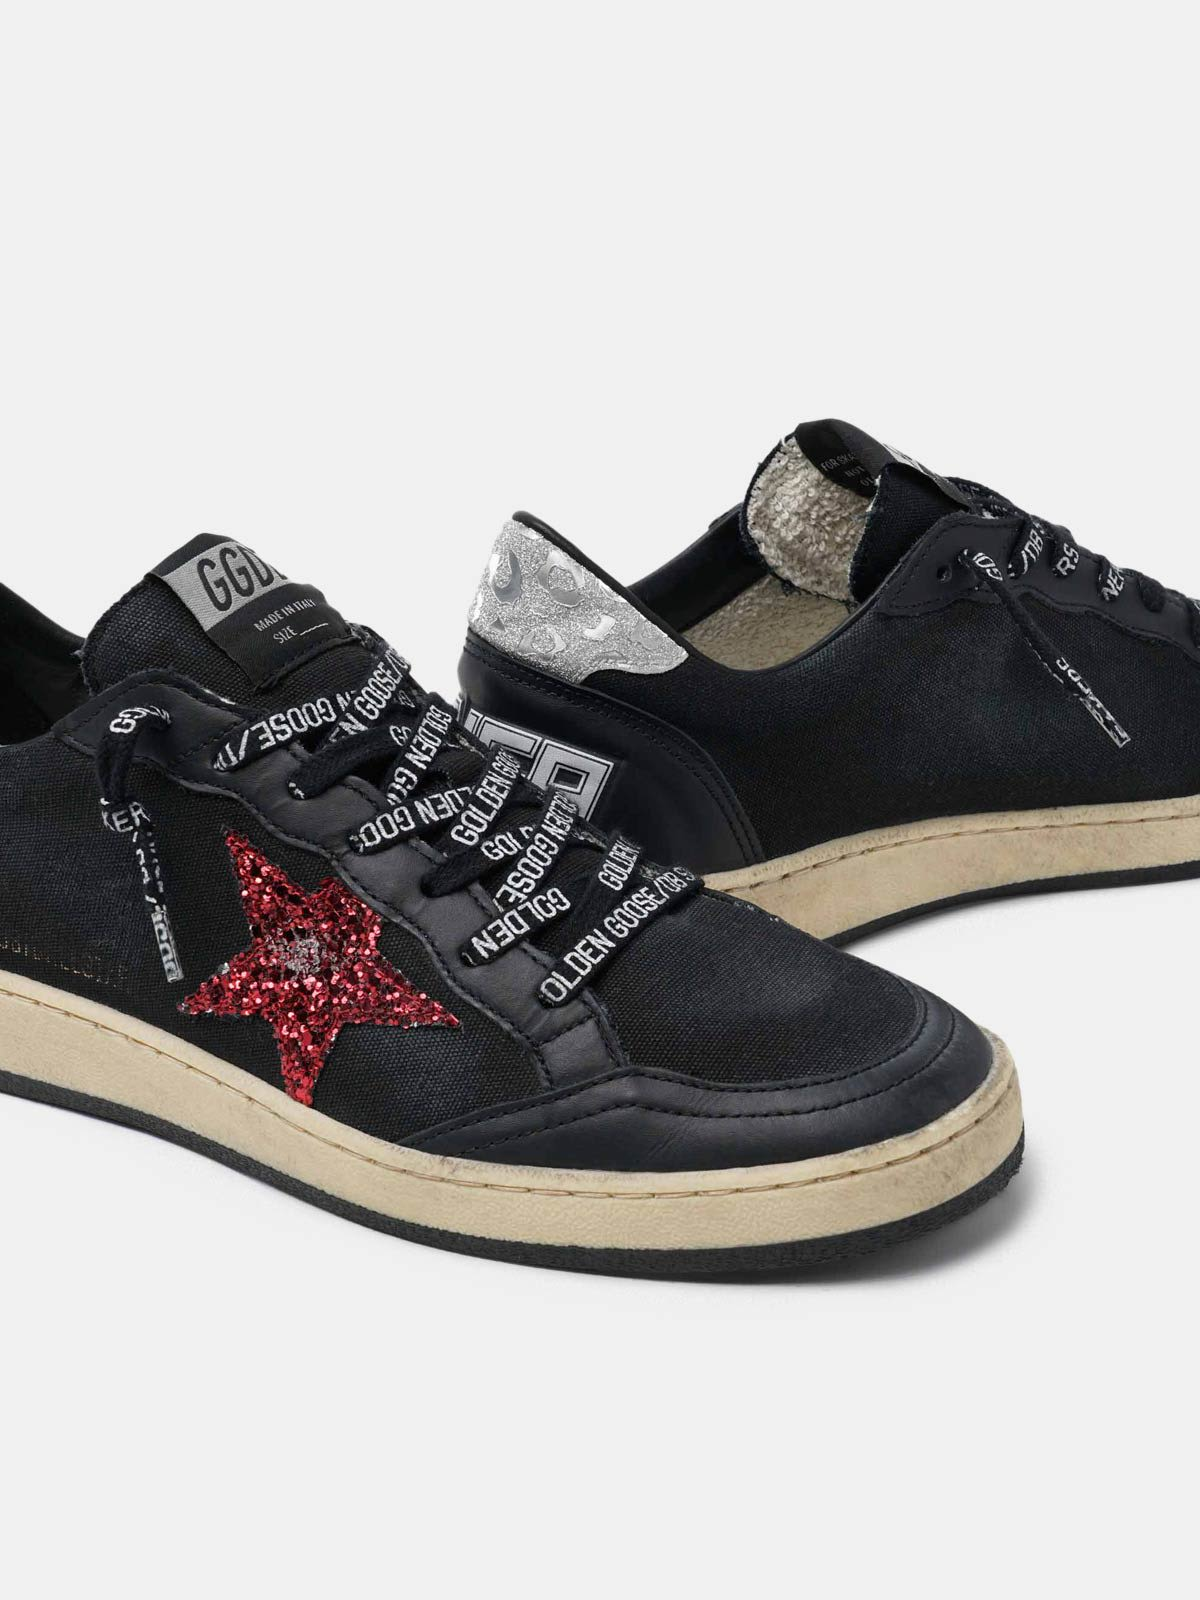 Black Ball Star sneakers with glittery purple star